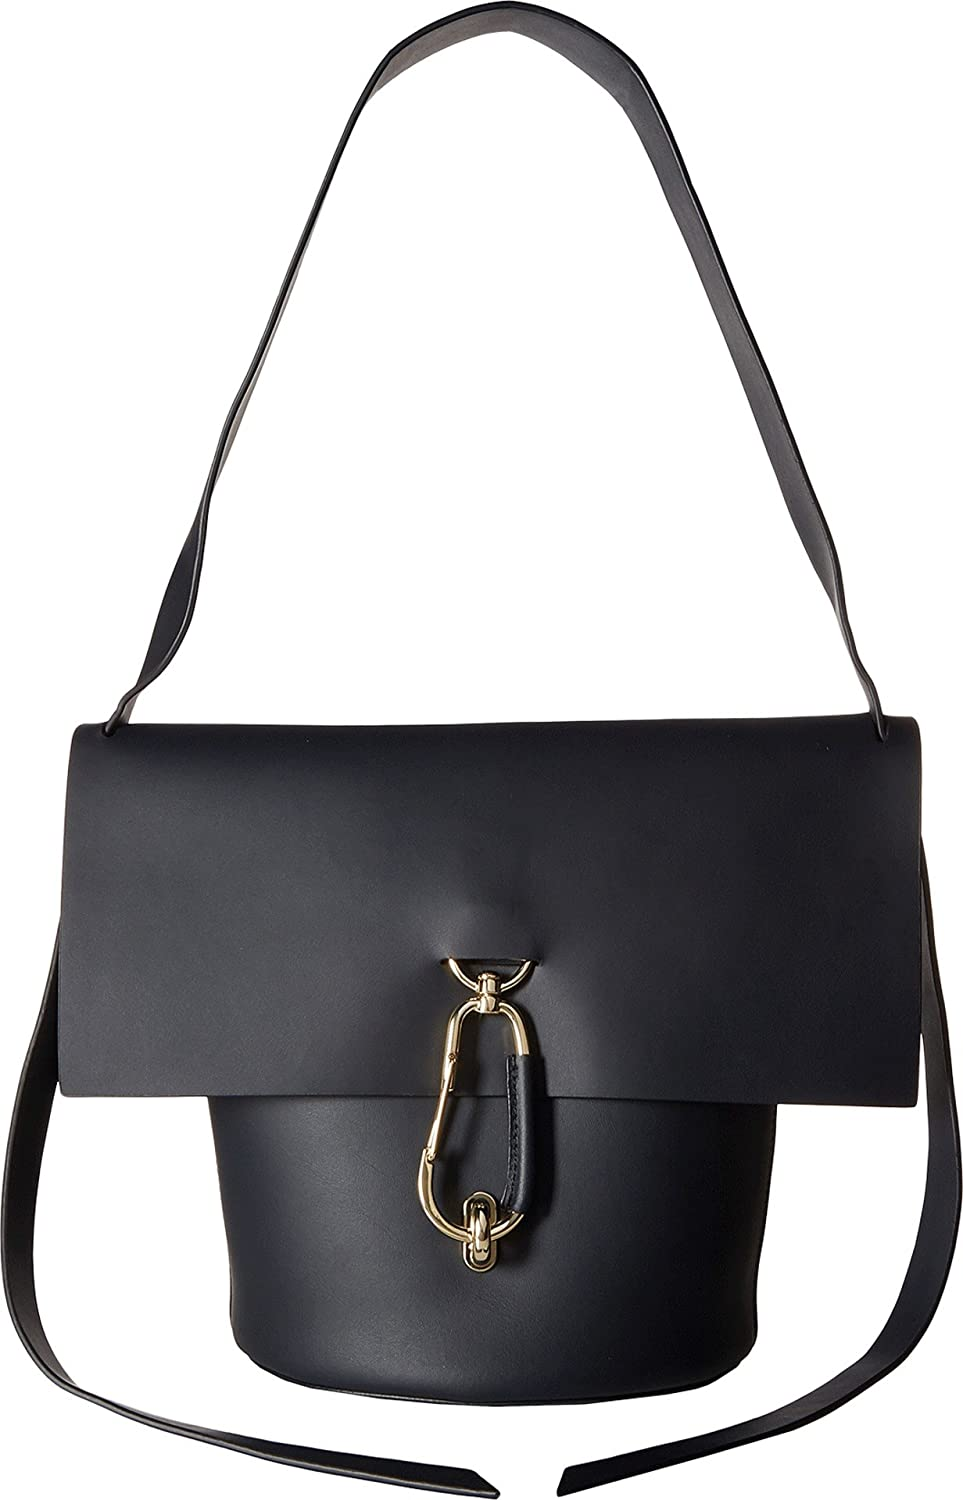 ZAC Zac Posen Women's Belay Shoulder Bag